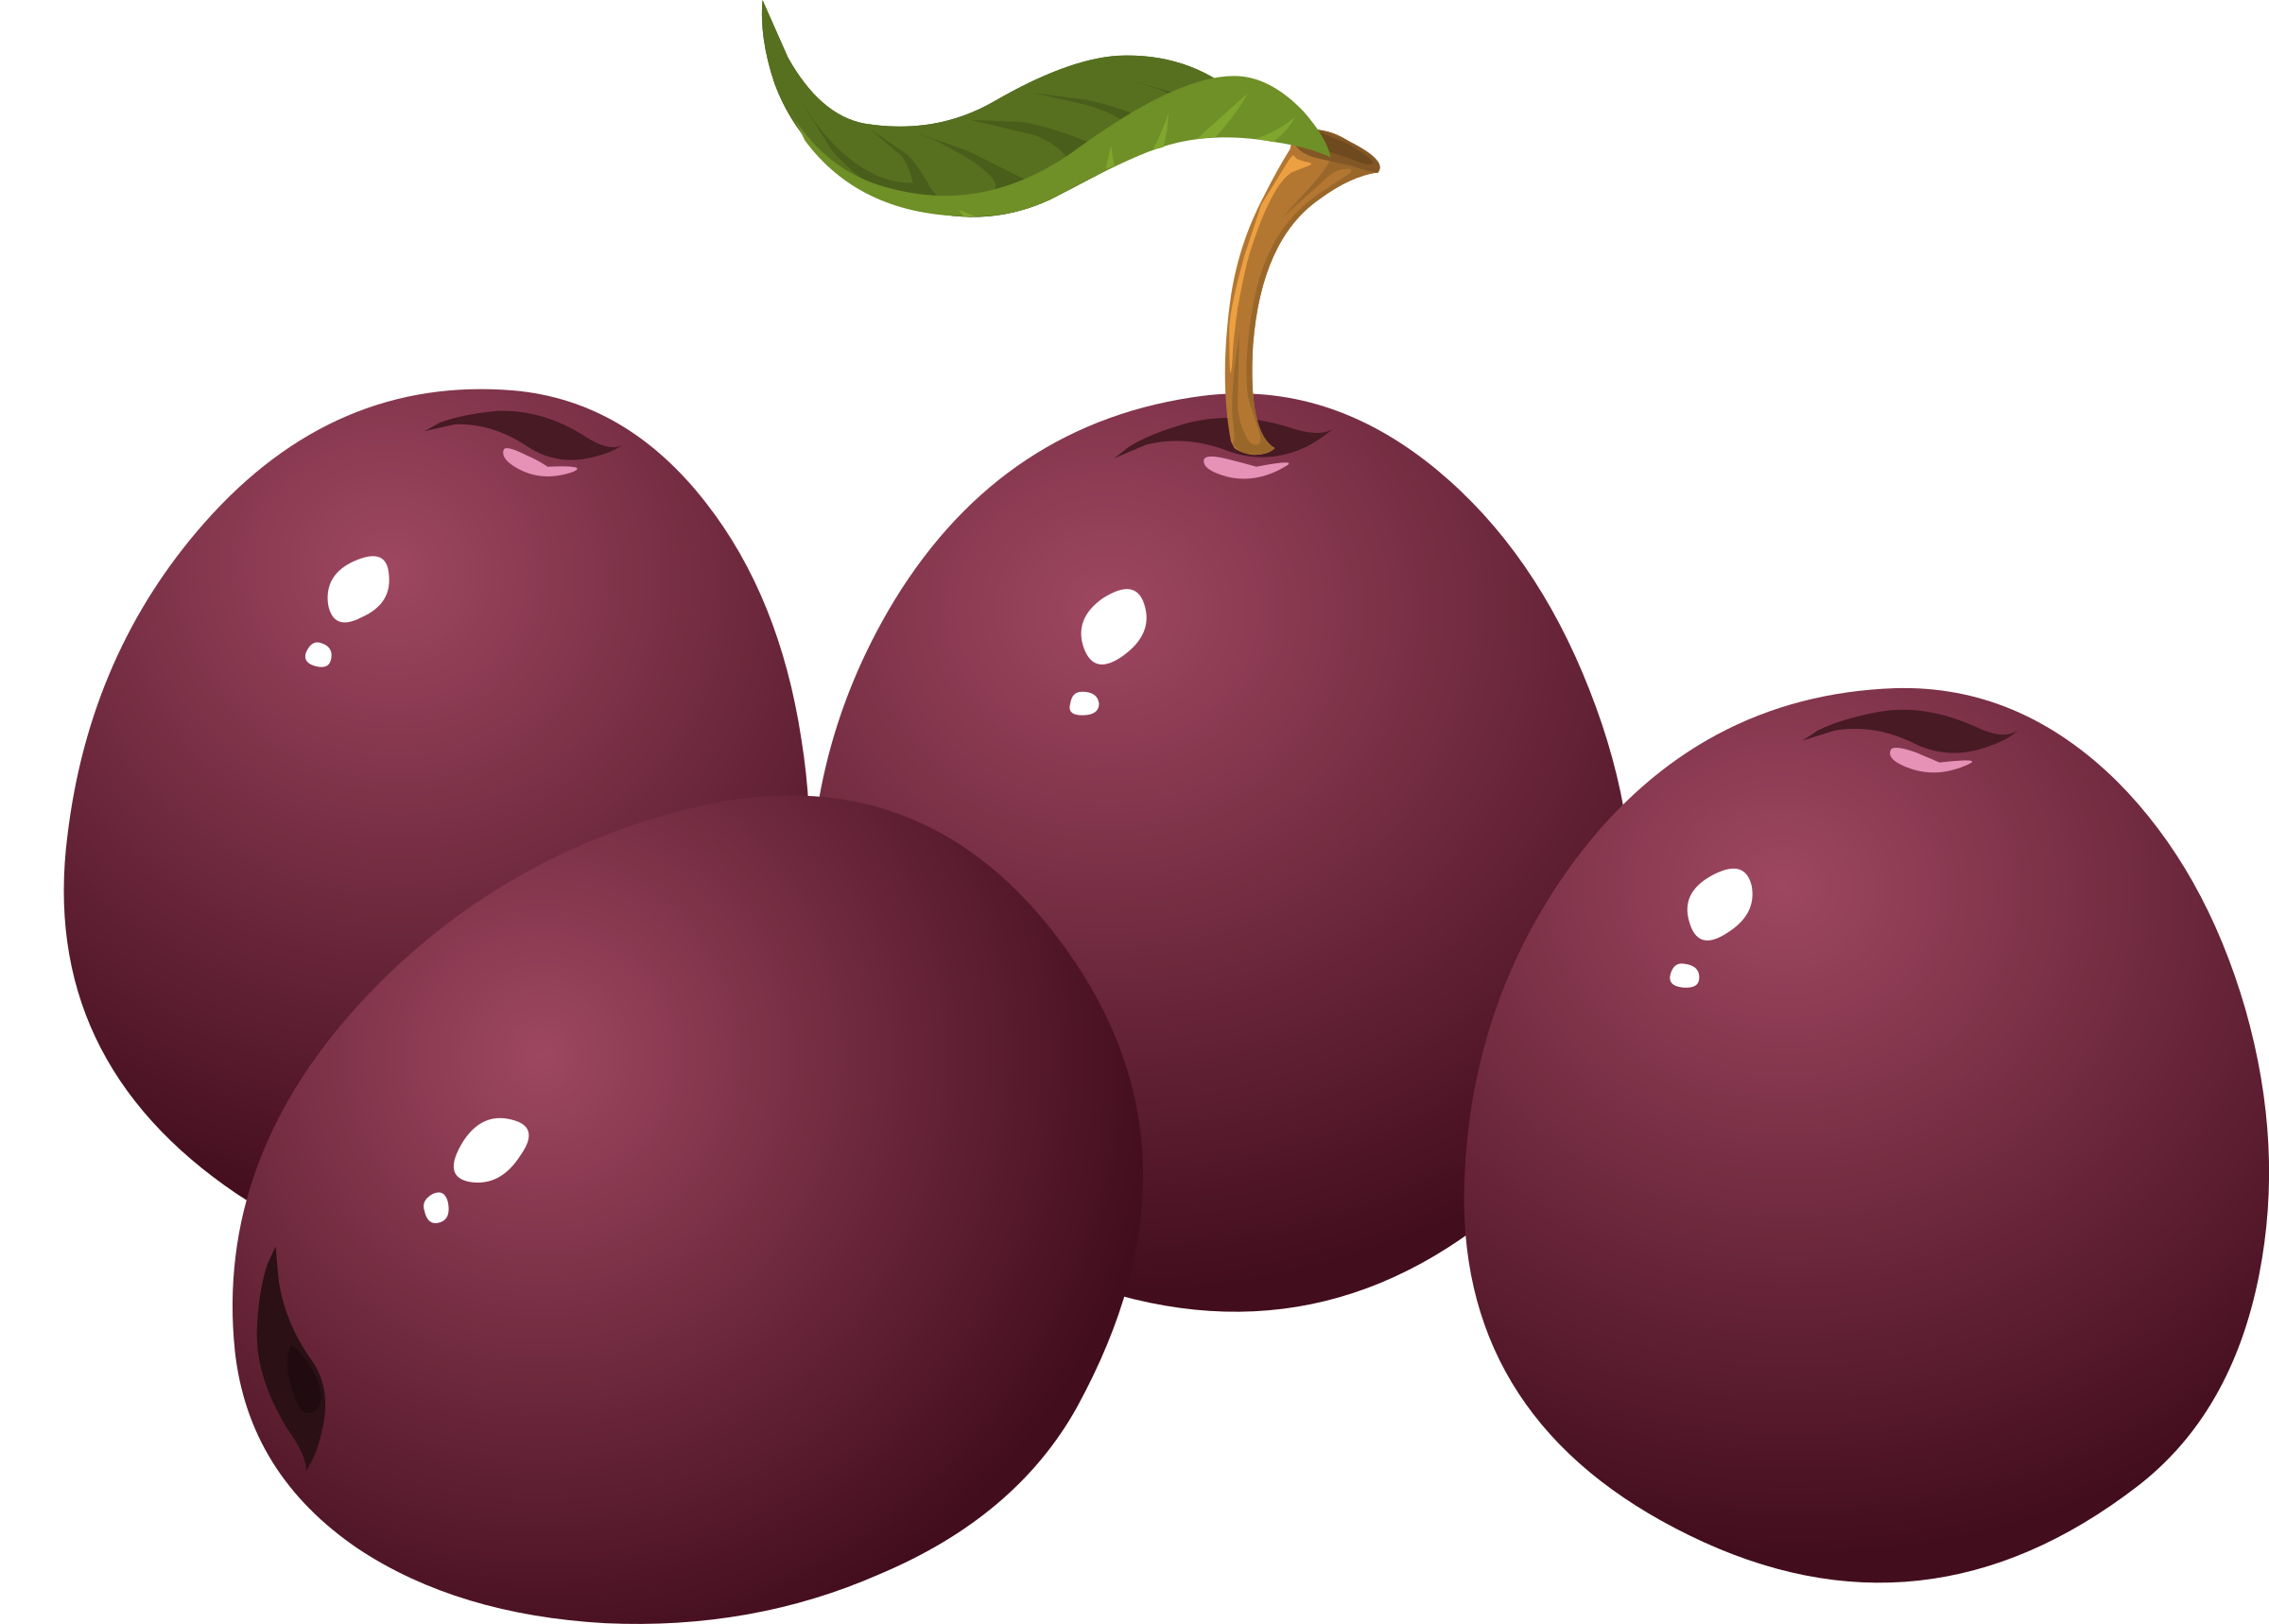 Plum clipart plum cake. Food icons png free